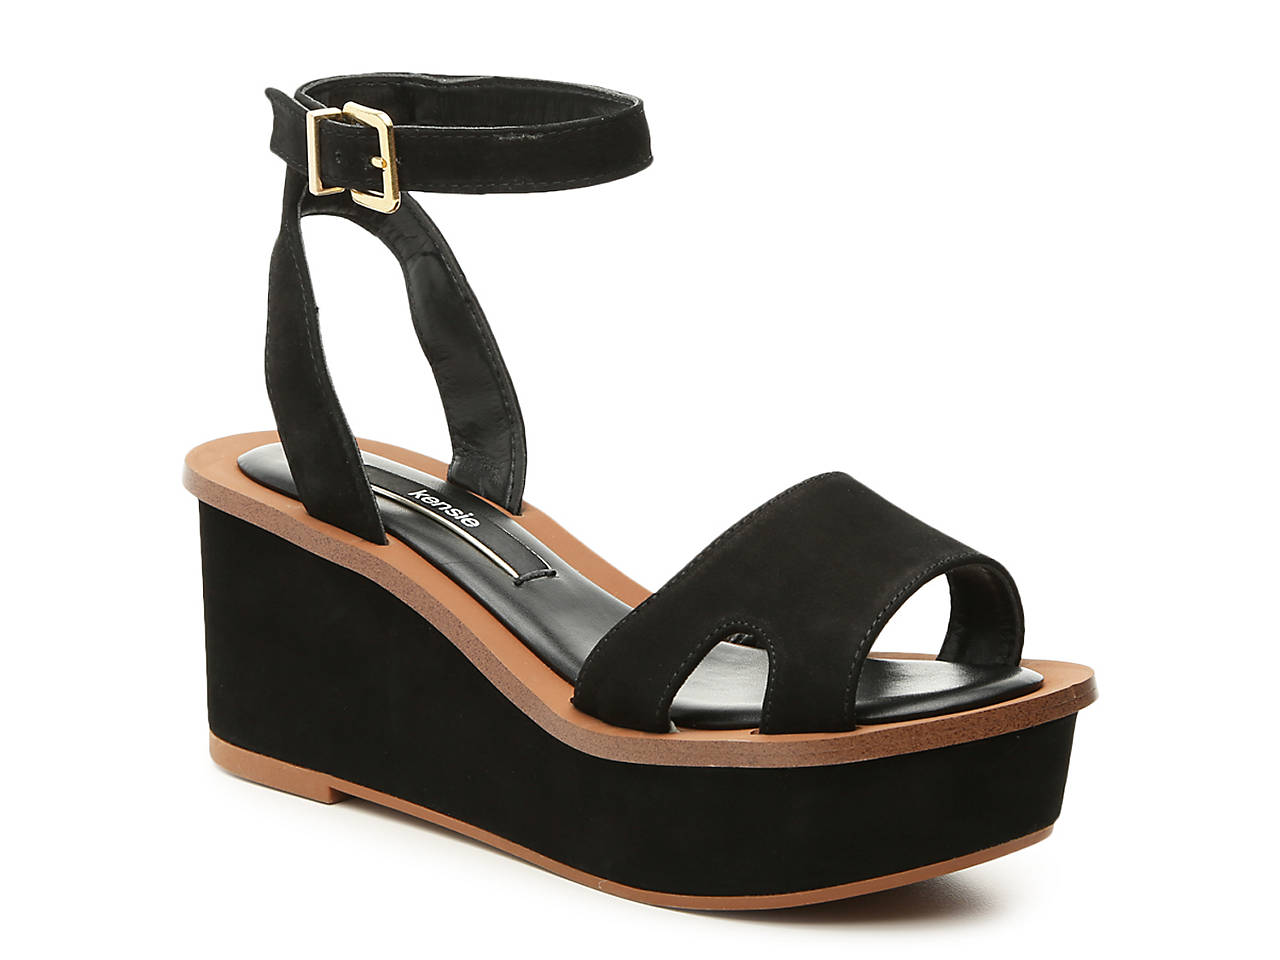 4f2f3967b1a Kensie Tray Wedge Sandal Women s Shoes